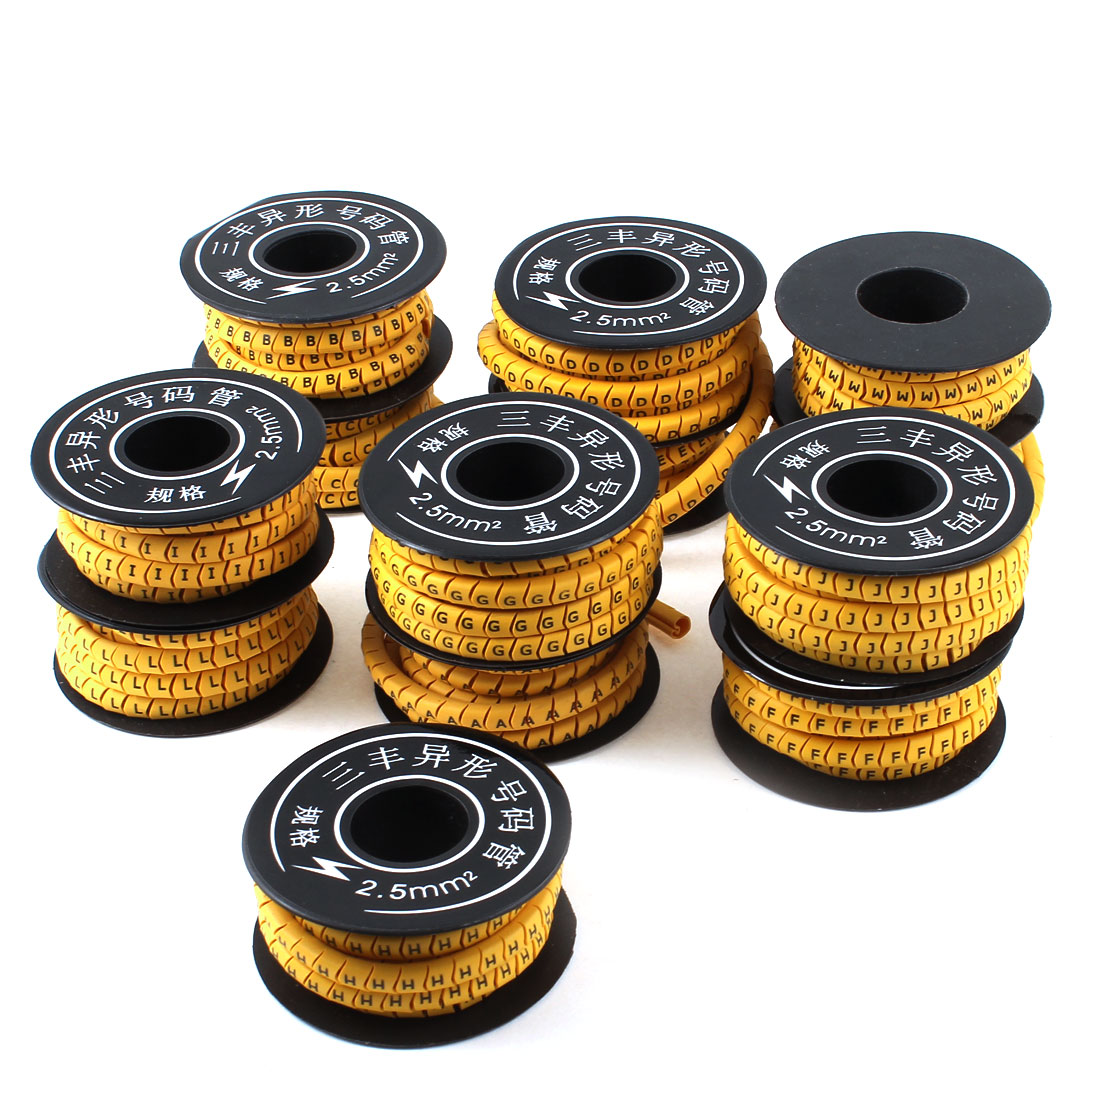 13 Pcs Yellow Flexible Soft PVC Letter A-M Print 2.5mm2 Fixing Wire Cable Markers Roll